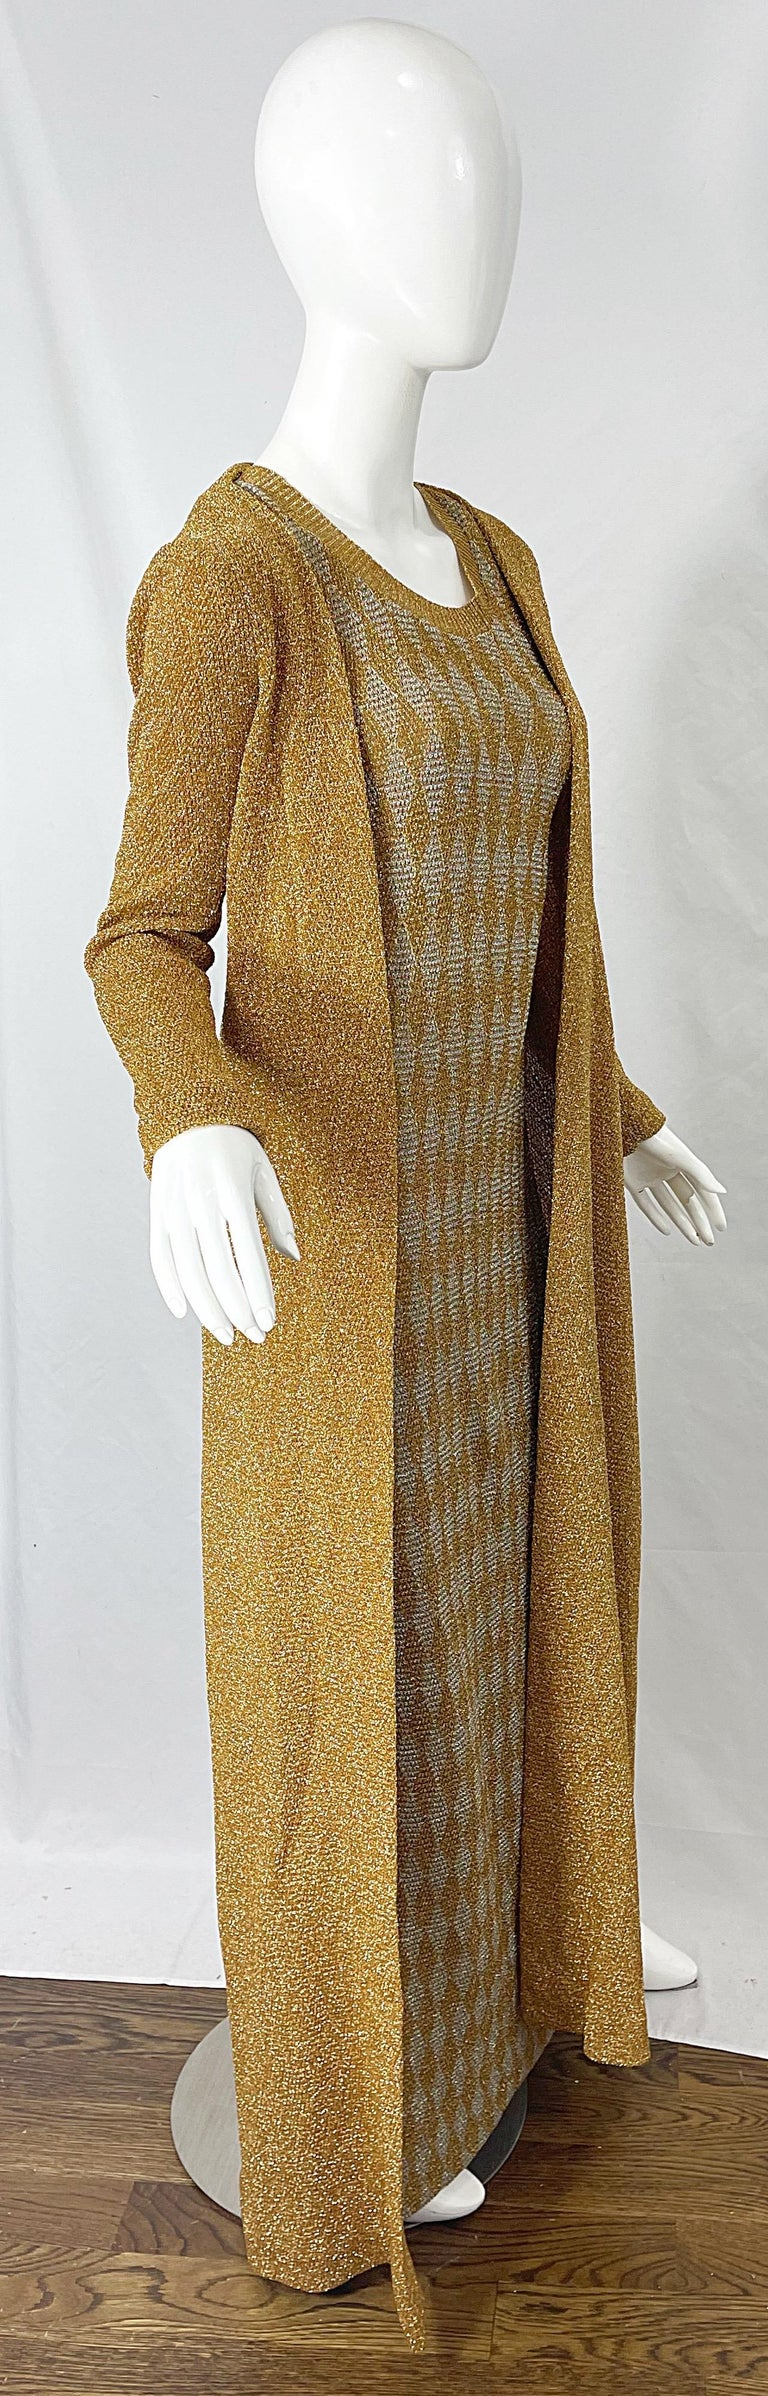 1970s Halston NWT Gold + Silver 70s Vintage Lurex Gown + Duster Cardigan For Sale 14